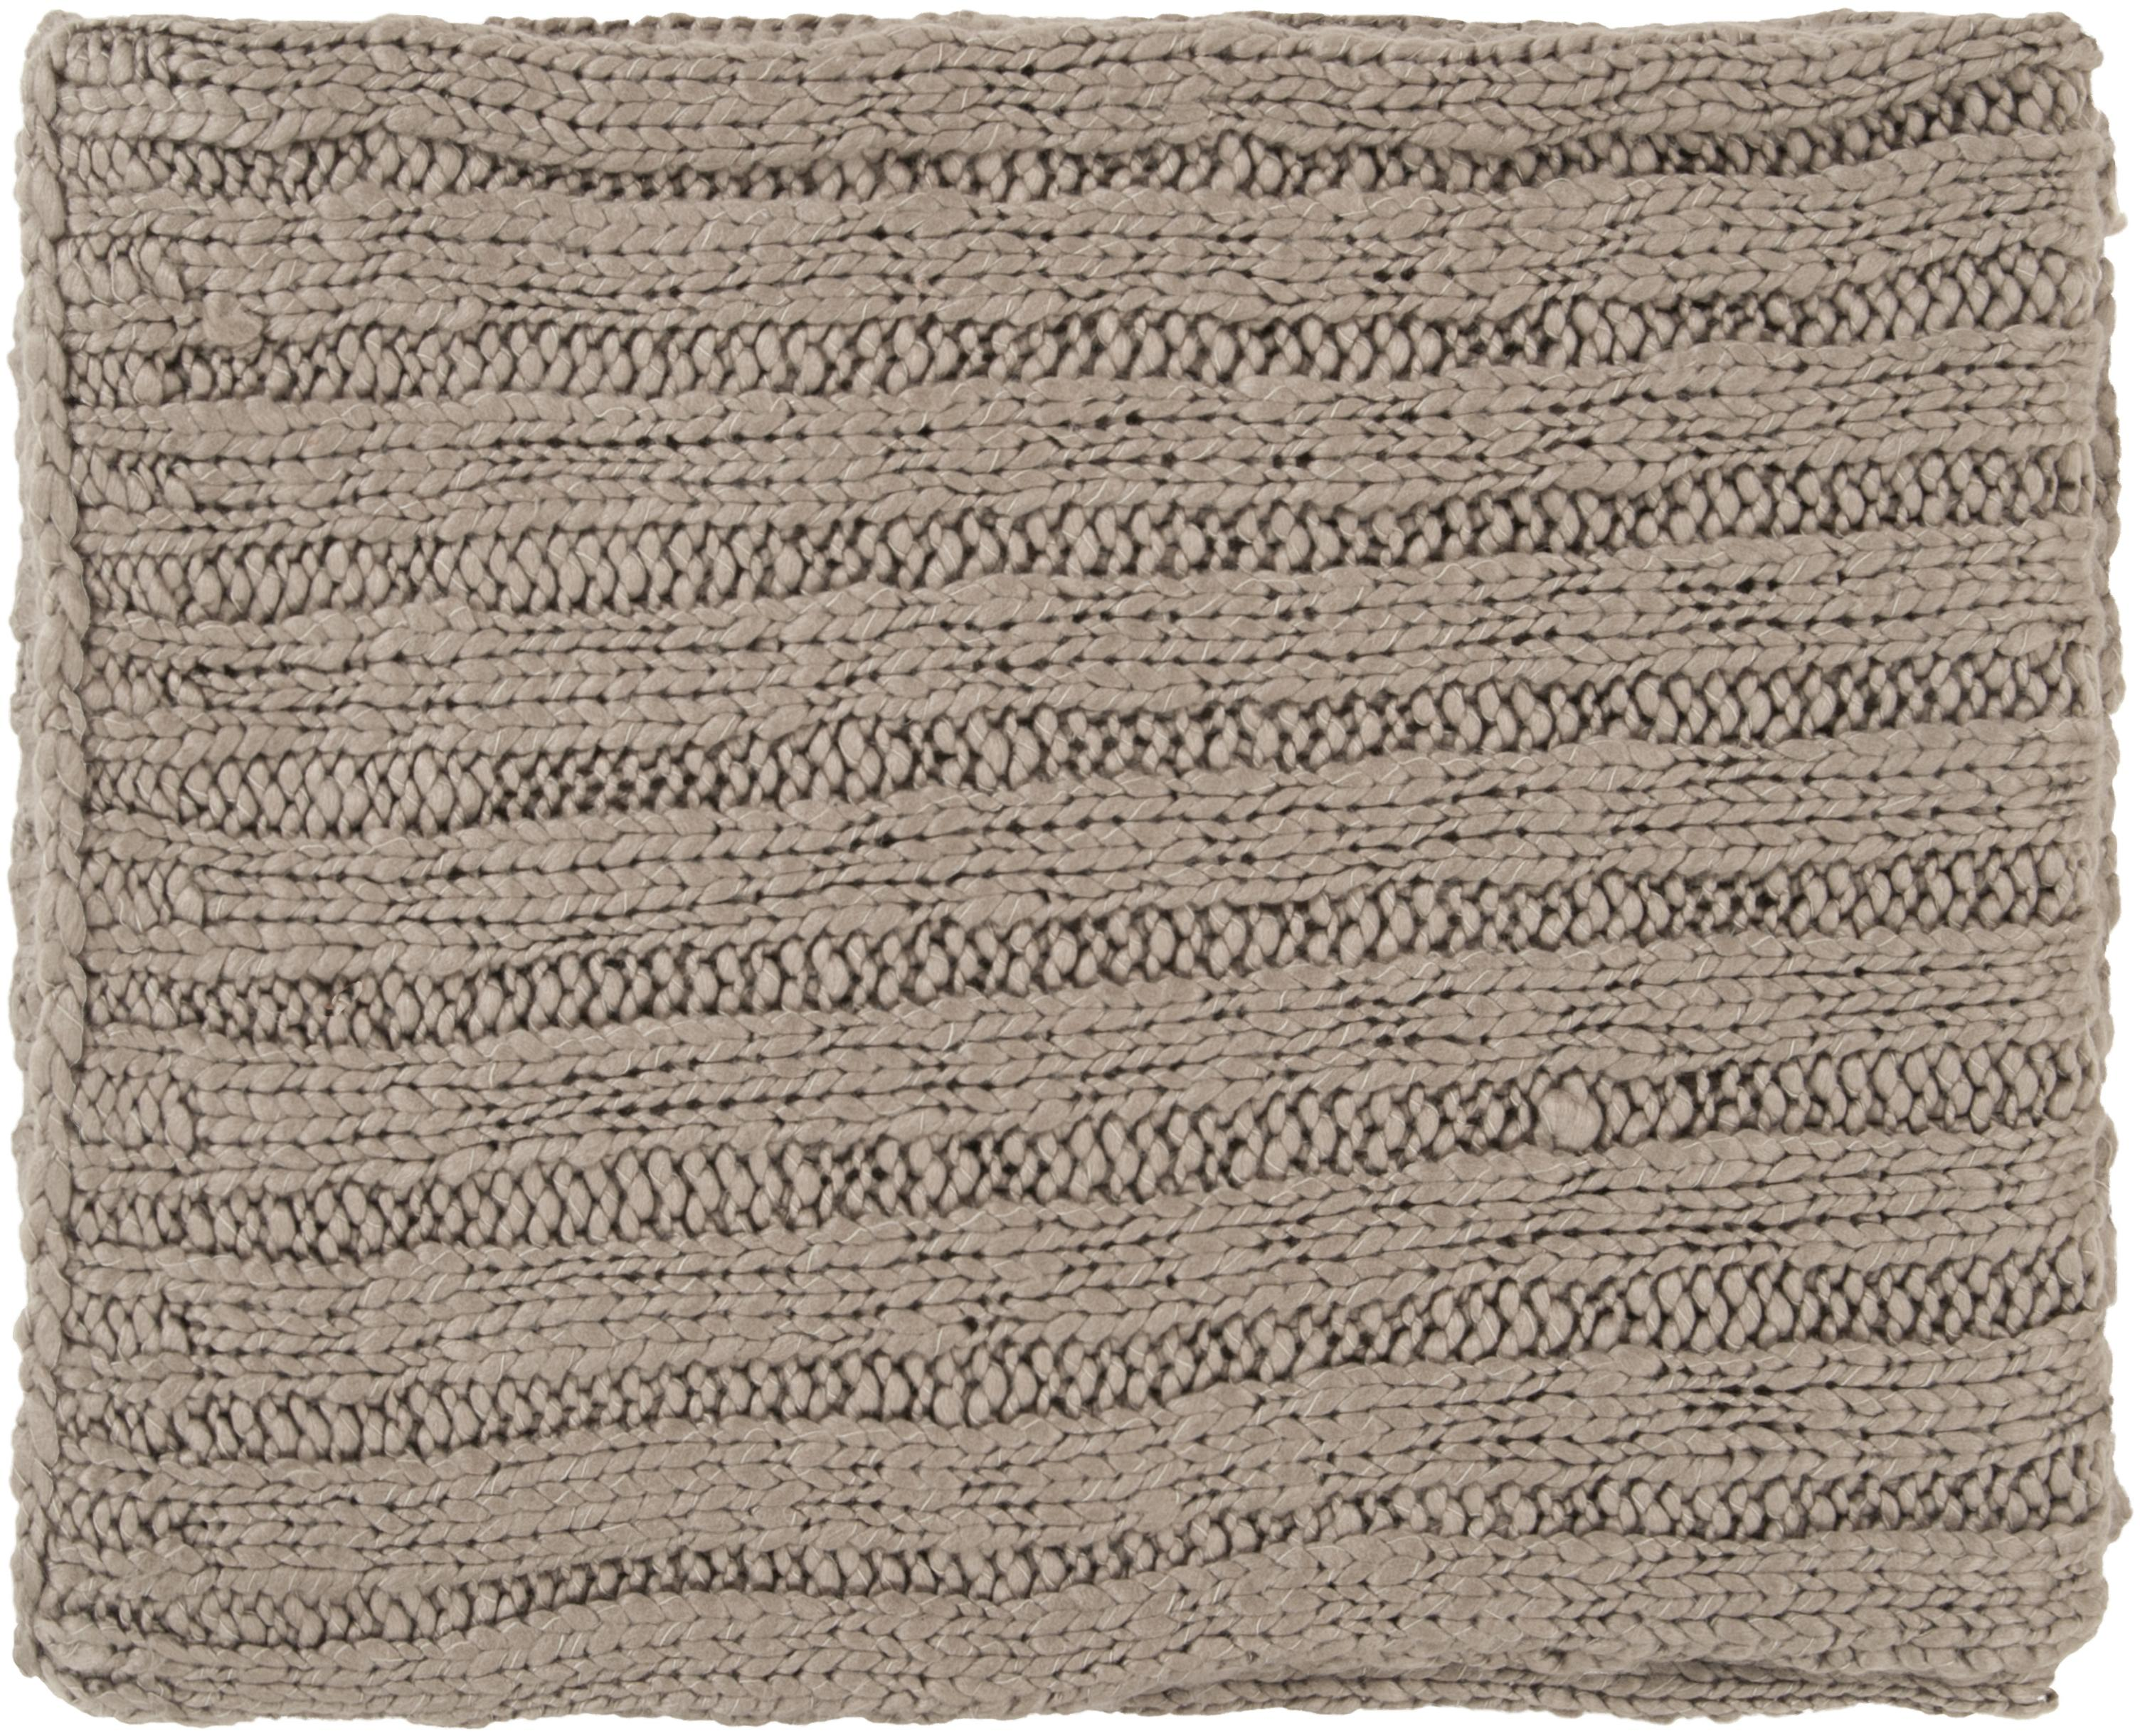 "Surya Rugs Throw Blankets Timothy 50"" x 60"" Throw - Item Number: TMT8302-5060"